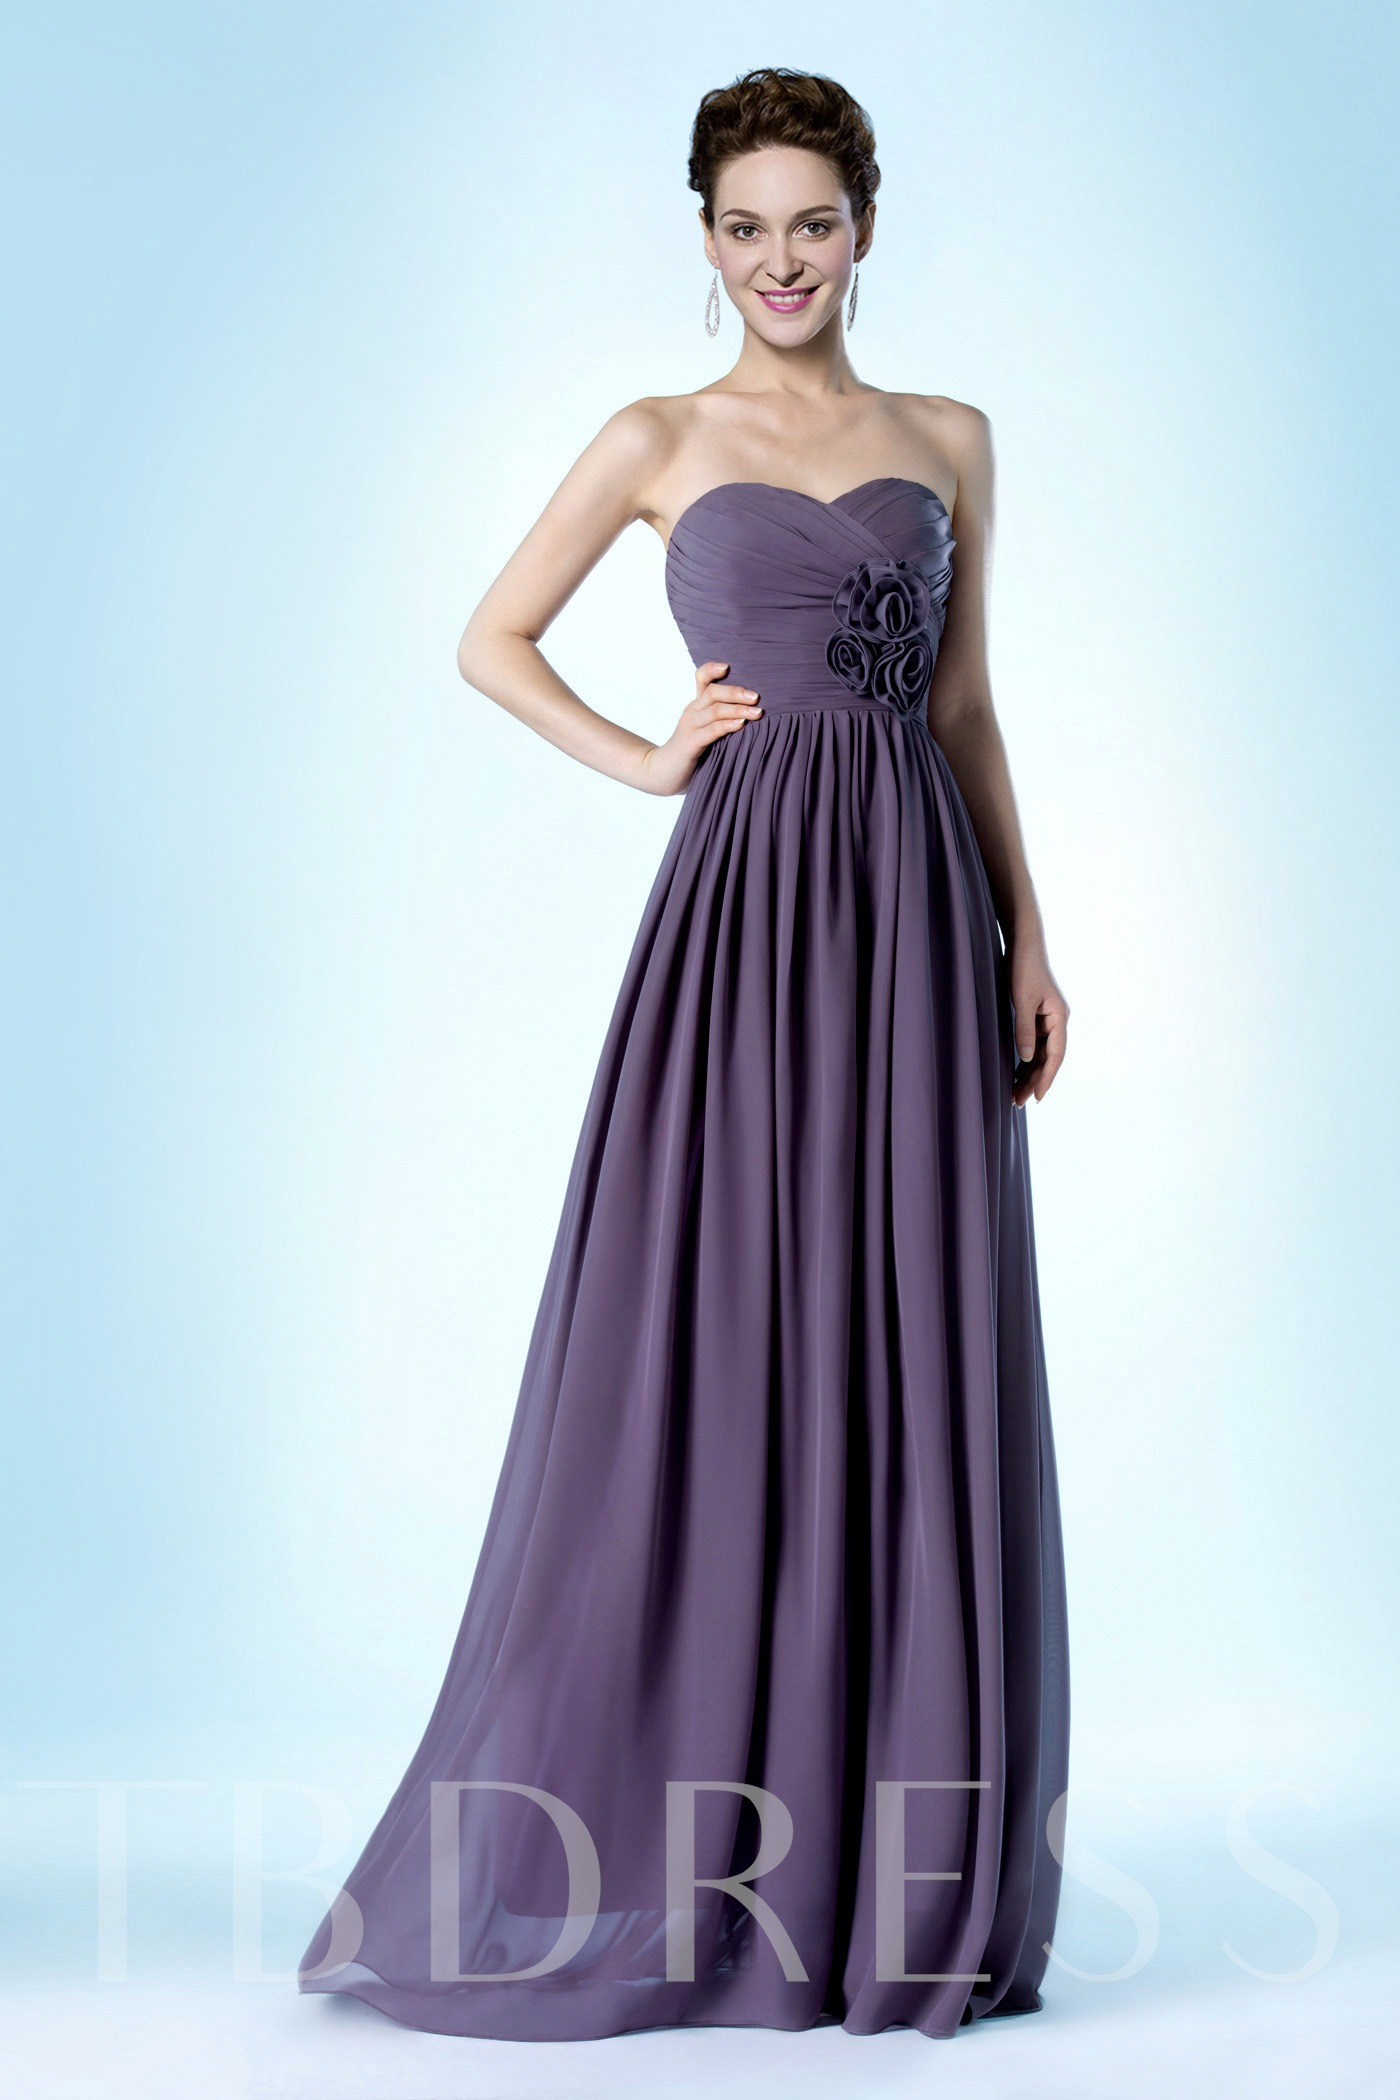 Image of A-Line Flowers Sweetheart Bridesmaid Dress